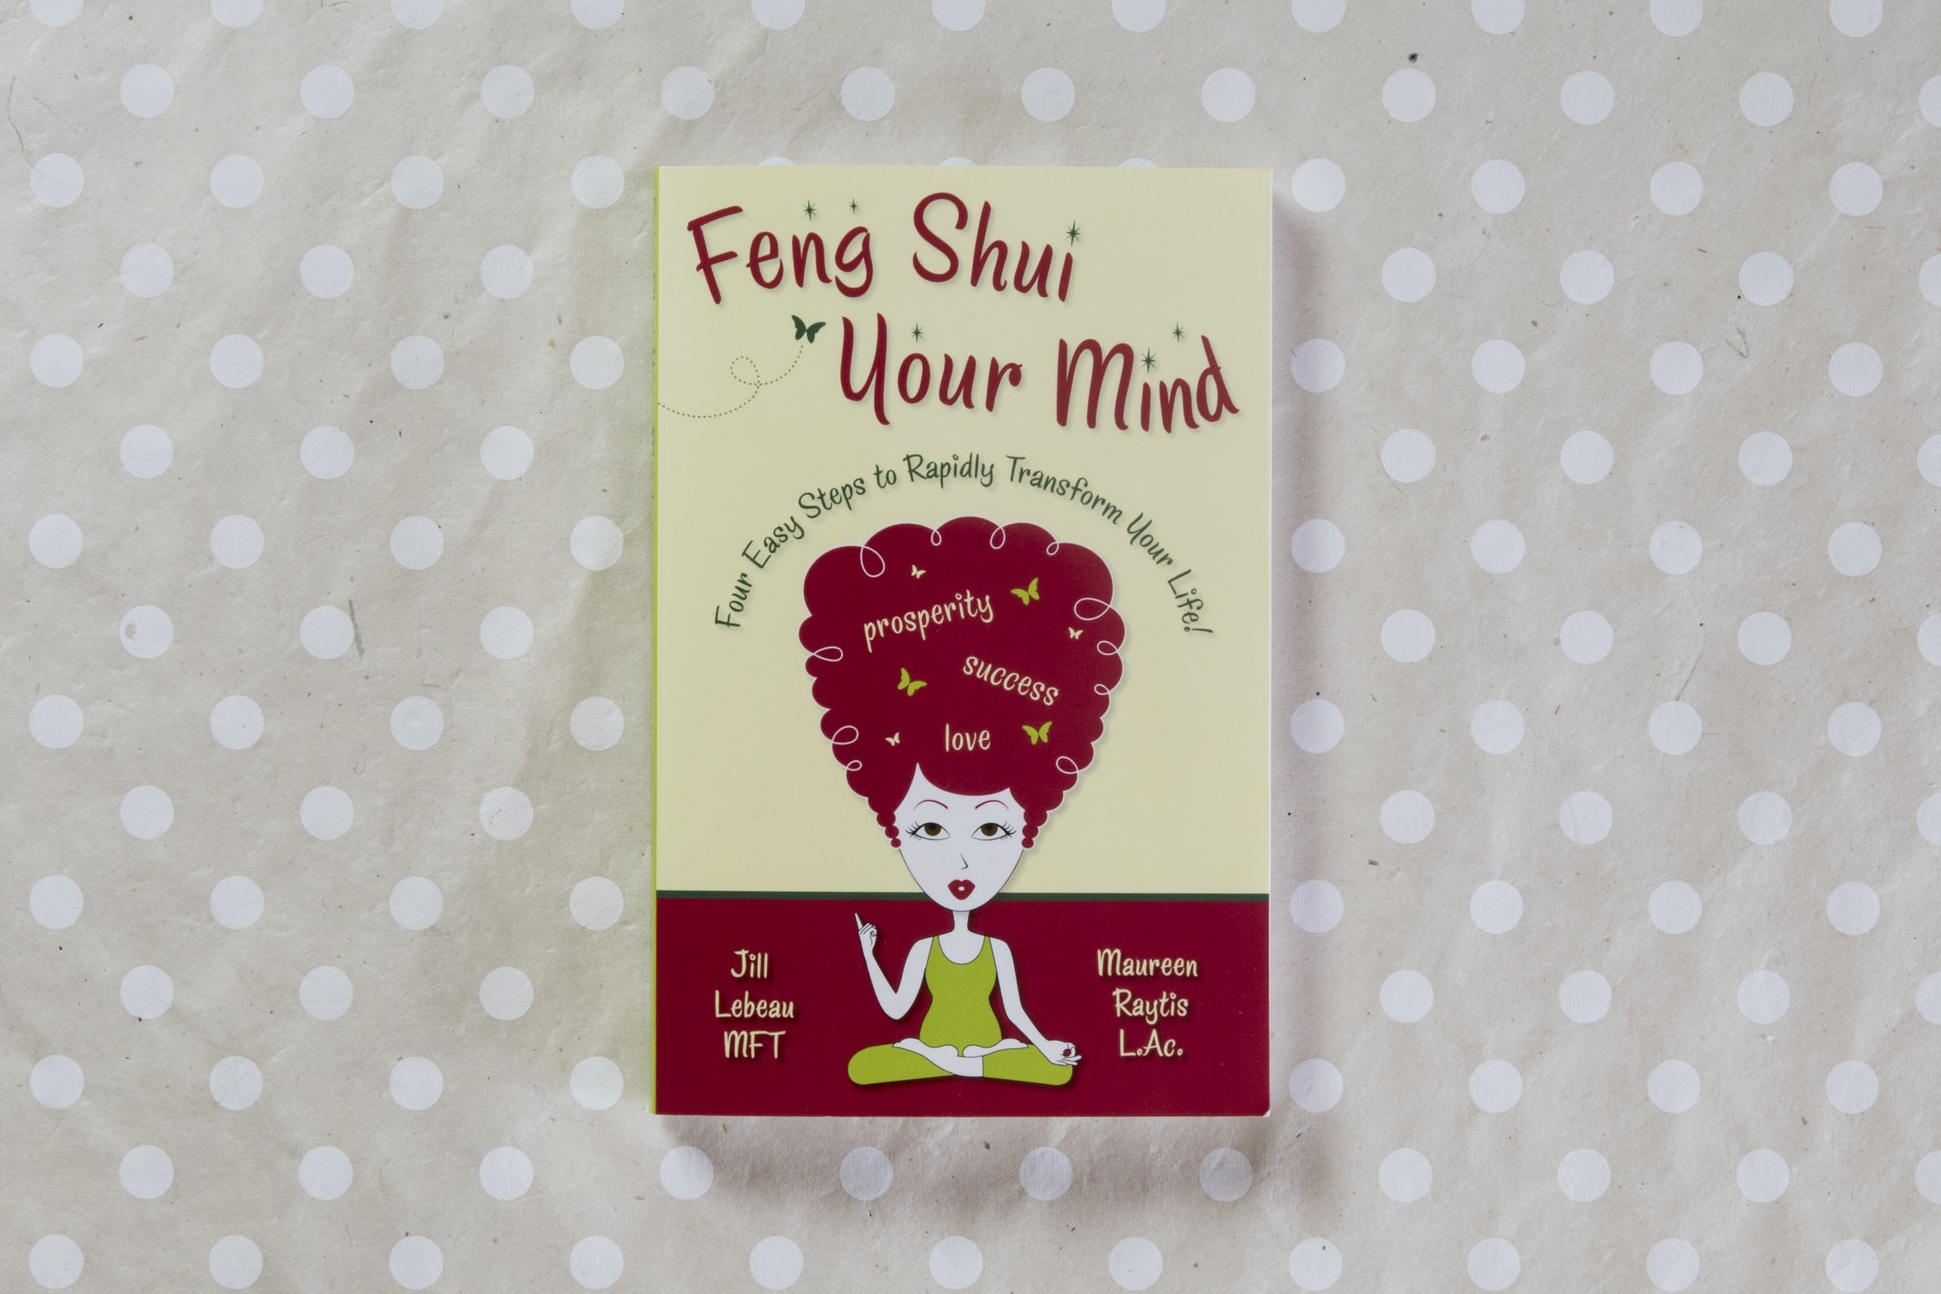 feng_shui_cover_front.jpg